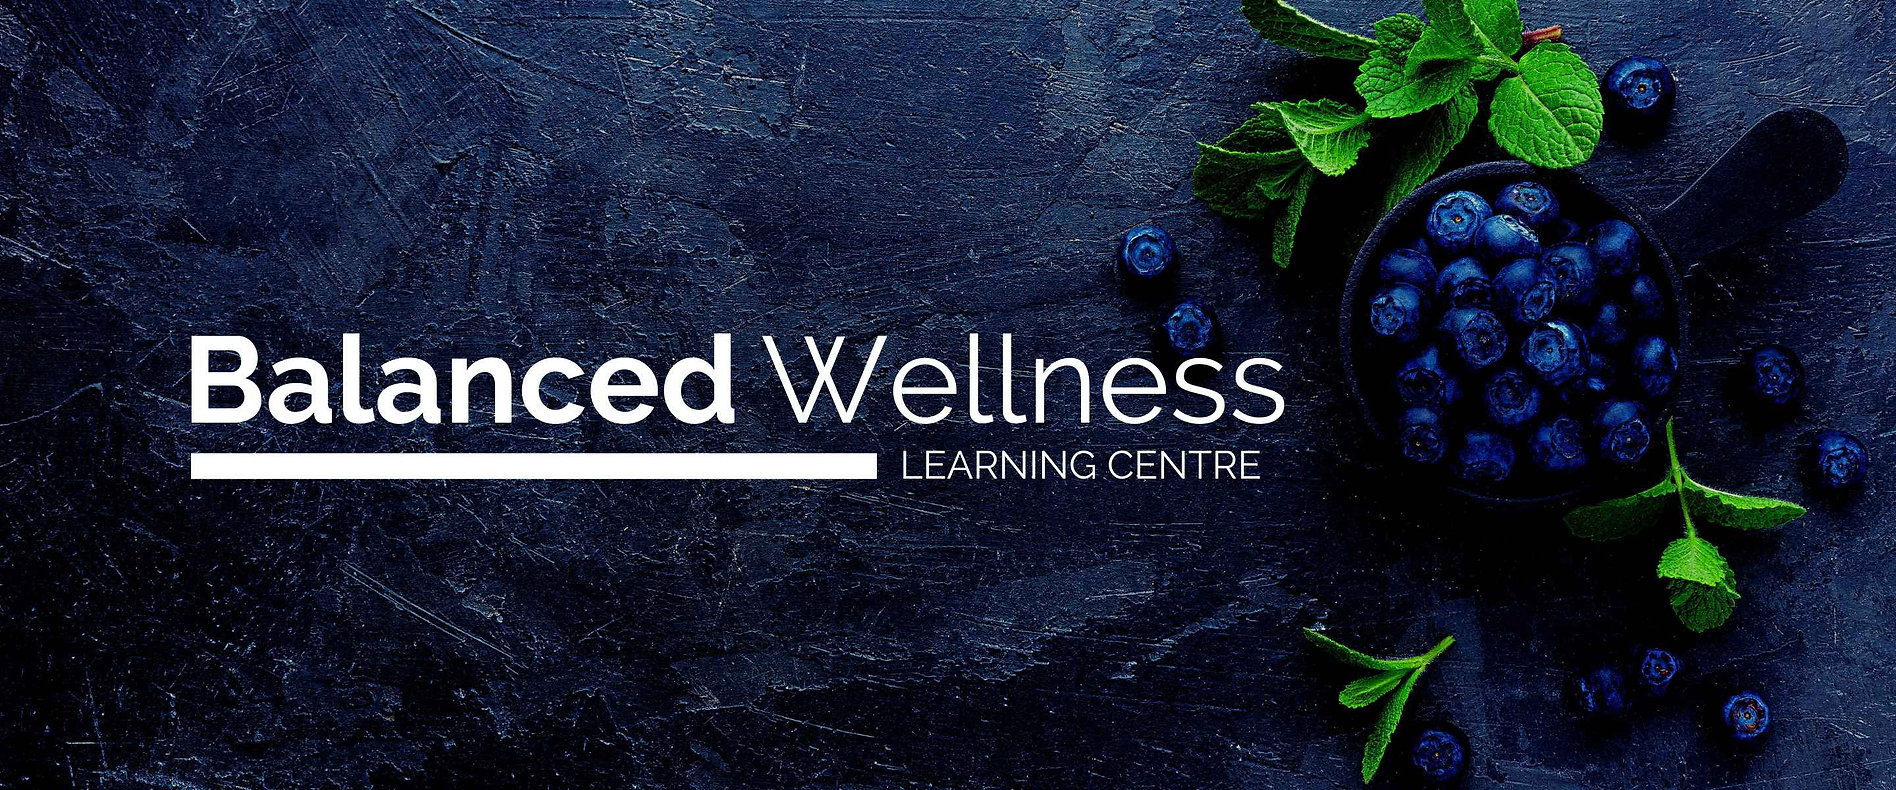 Balanced Wellness Learning Centre Cover